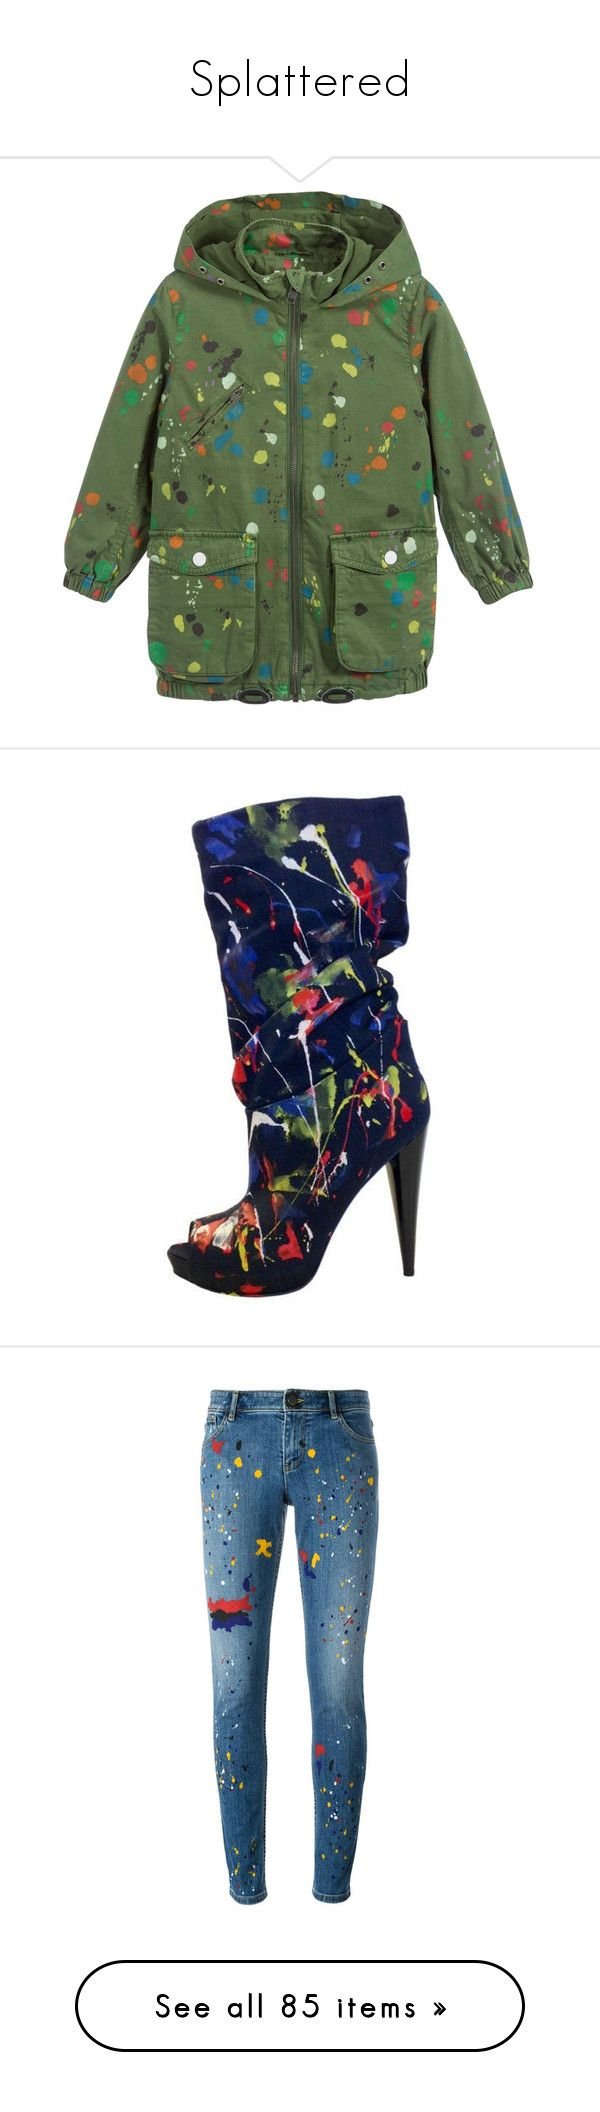 """Splattered"" by saint-mercy ❤ liked on Polyvore featuring jackets, shoes, boots, ankle booties, multi color boots, multicolor boots, multi colored boots, scrunch boots, ruched boots and jeans"